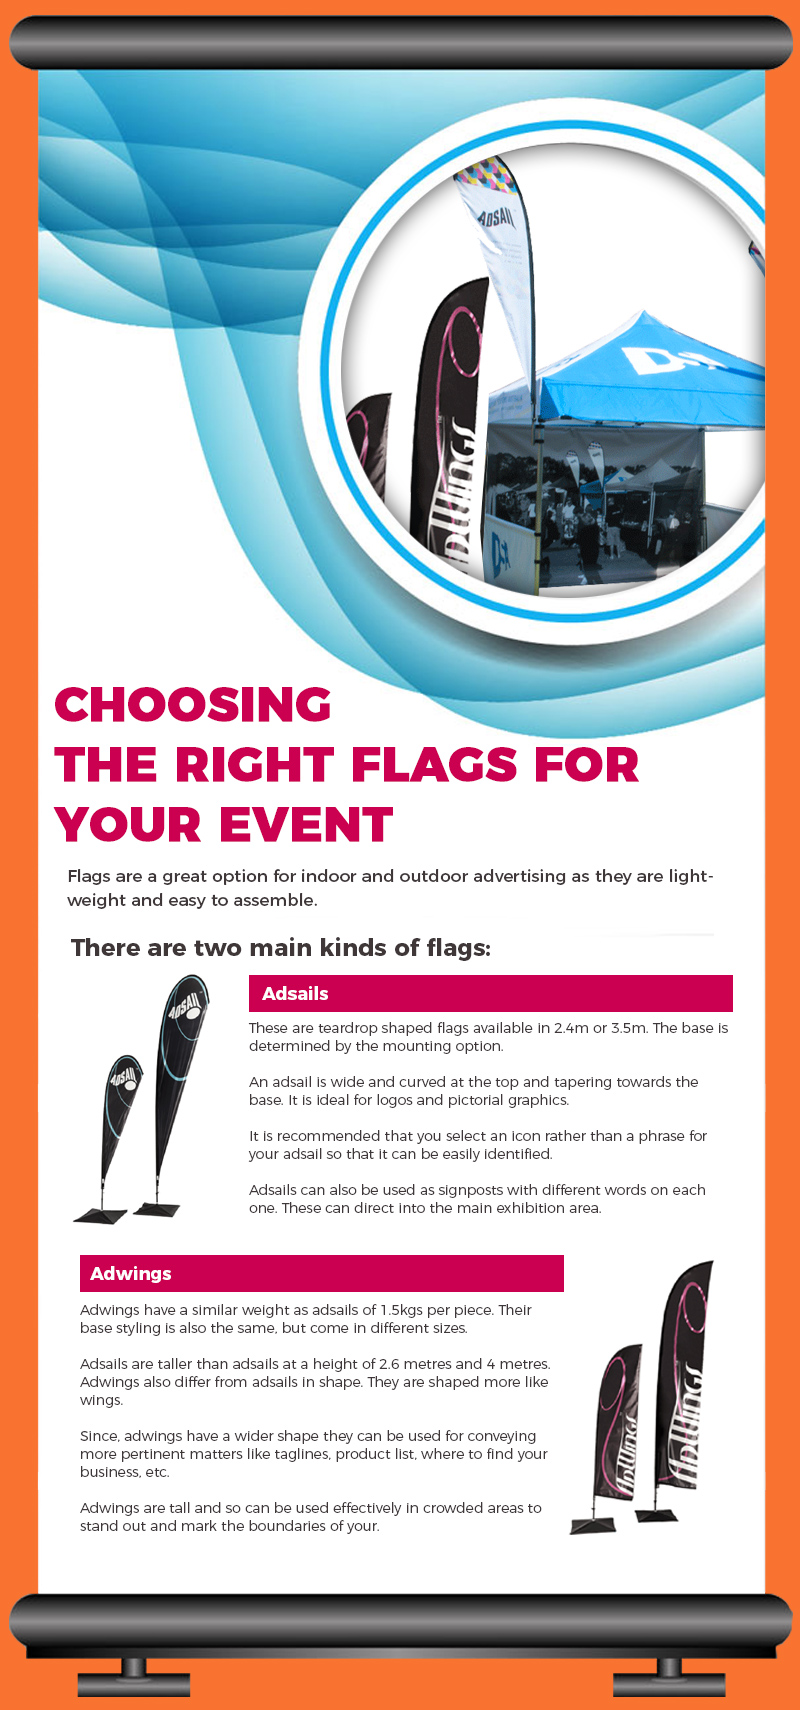 Choosing The Right Flags For You Revent